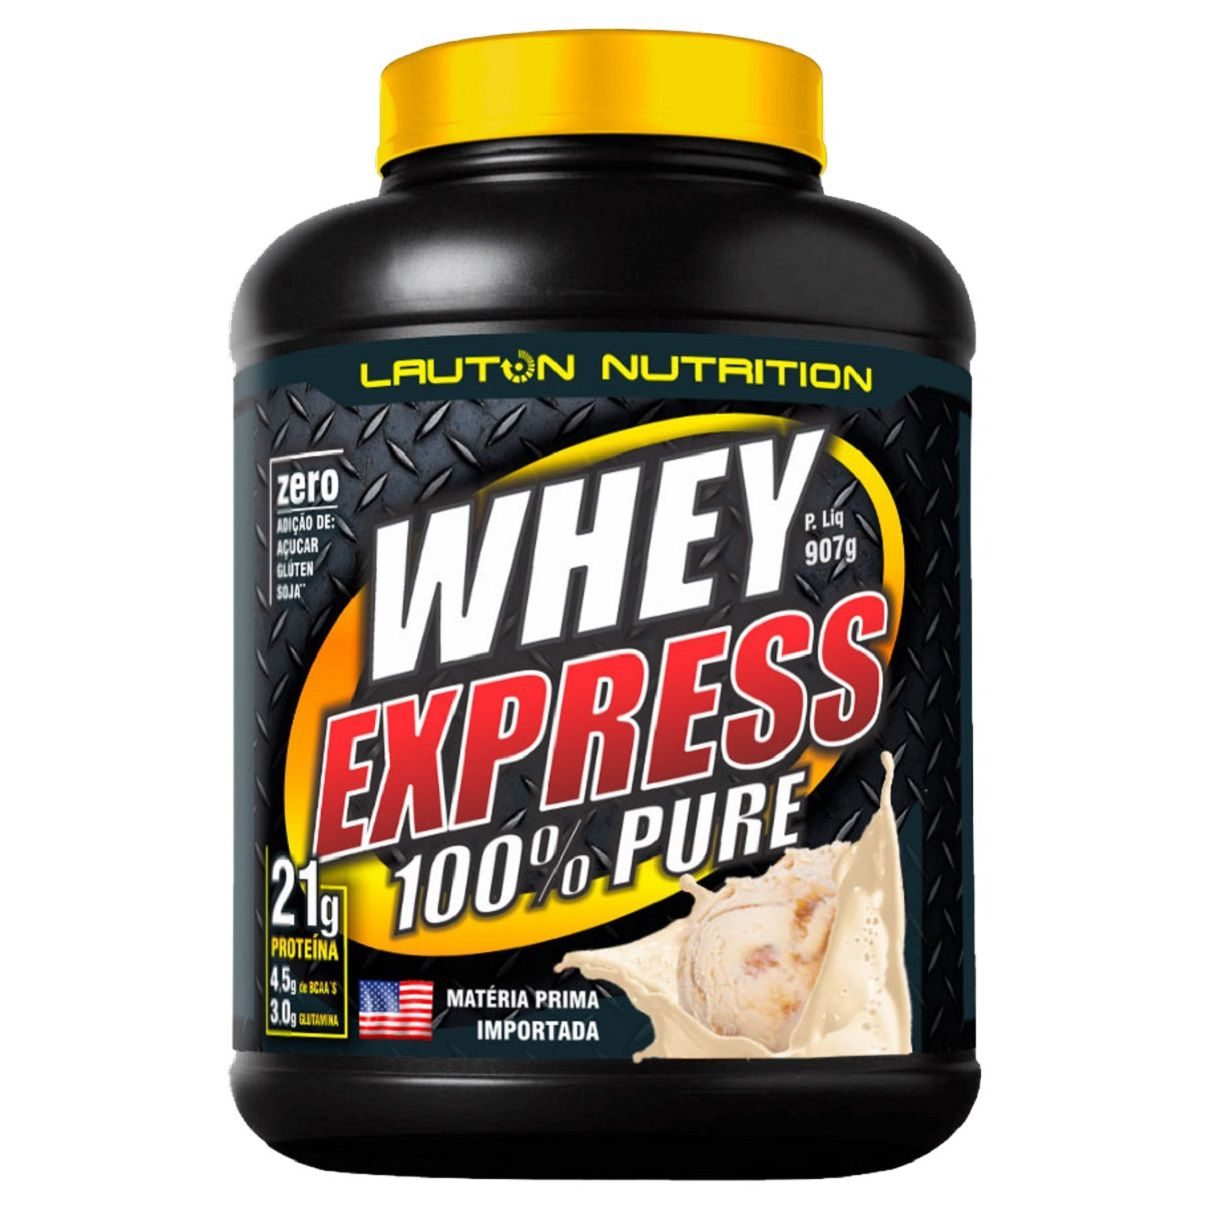 2x Whey Protein Express Lauton Nutrition 100% Pure 907g